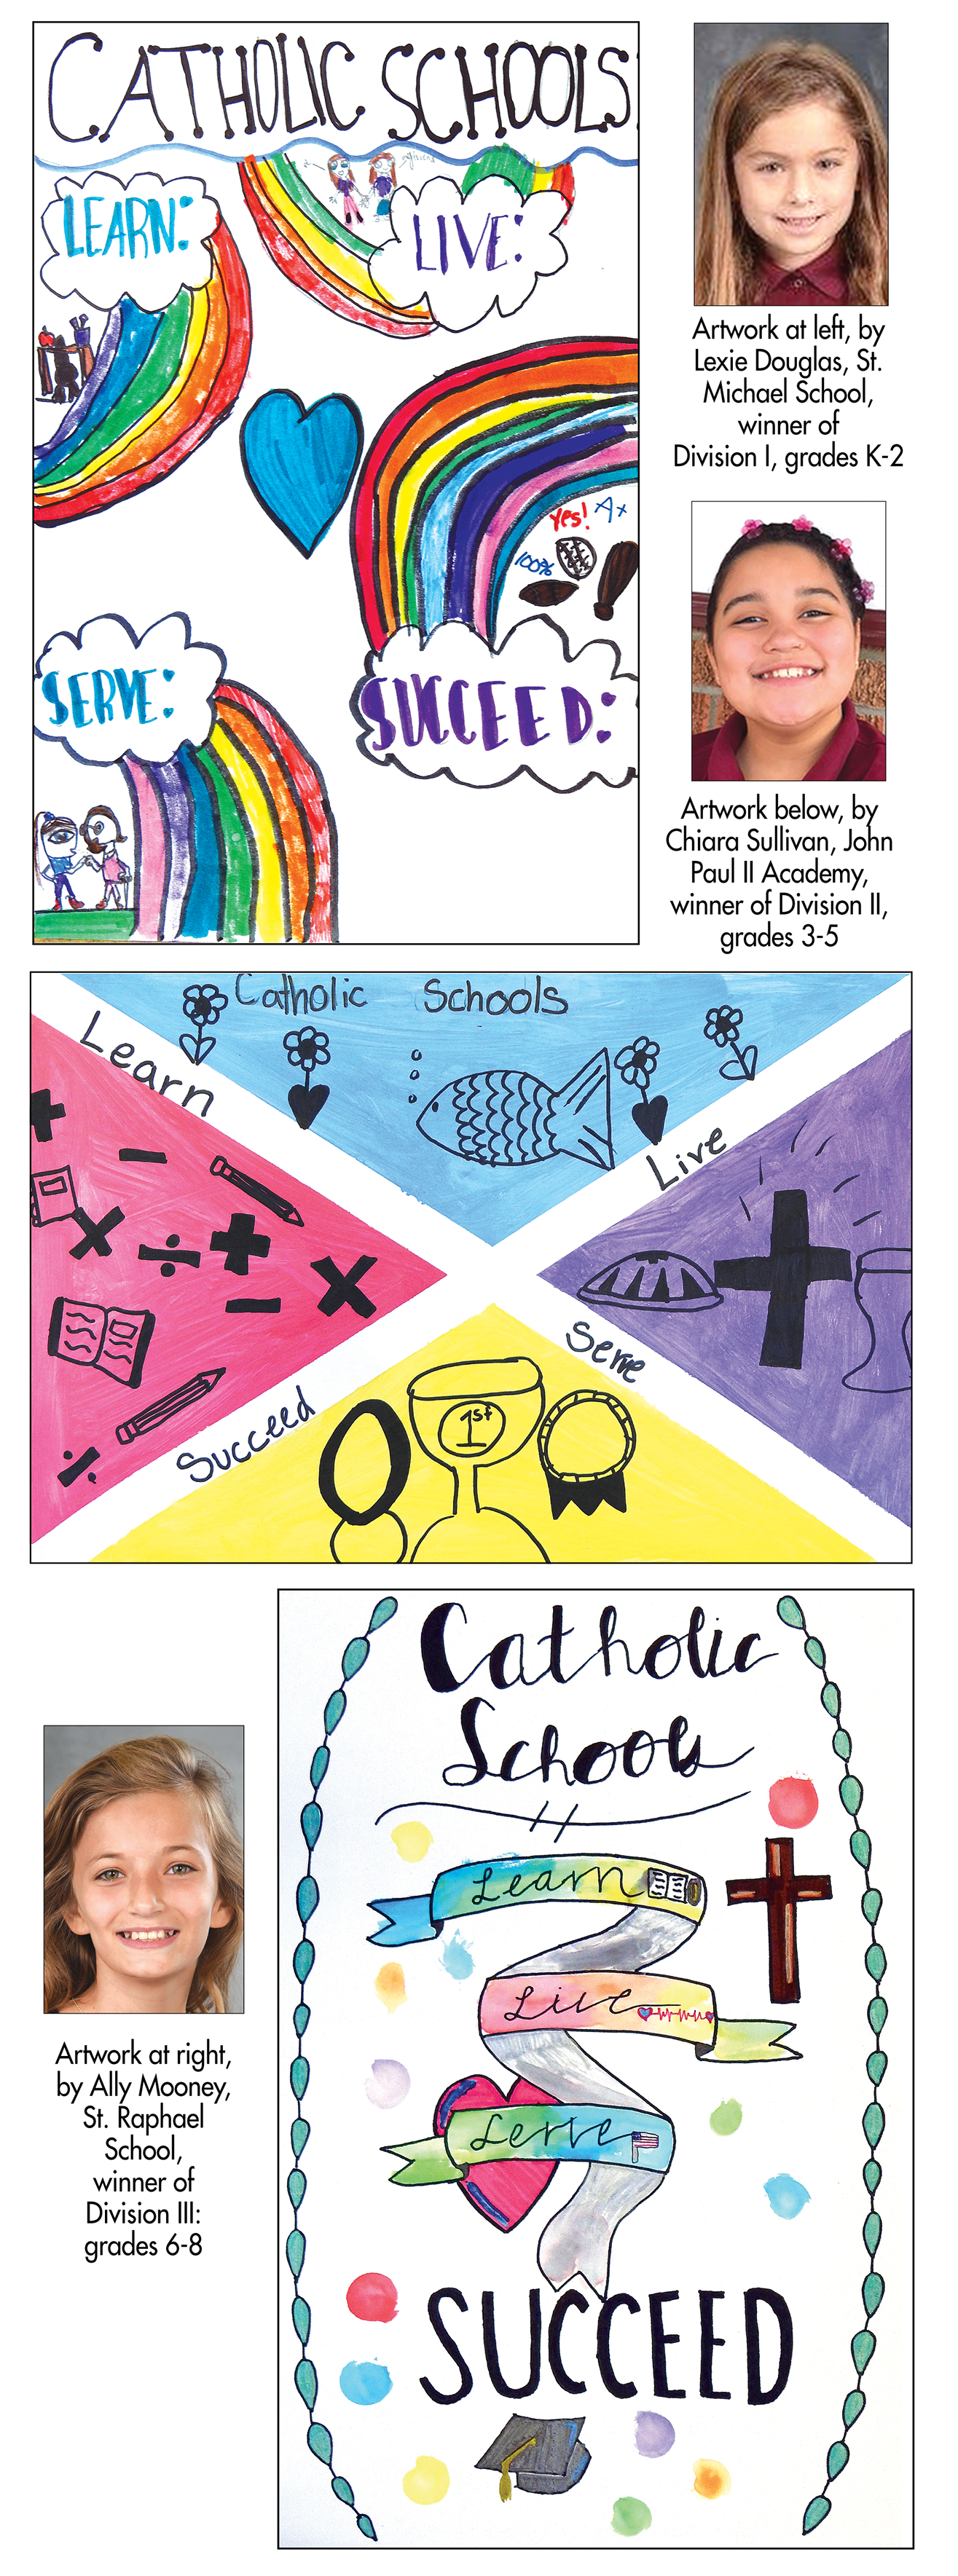 Catholic Schools Week – Winners of foundation's poster and essay contest are announced